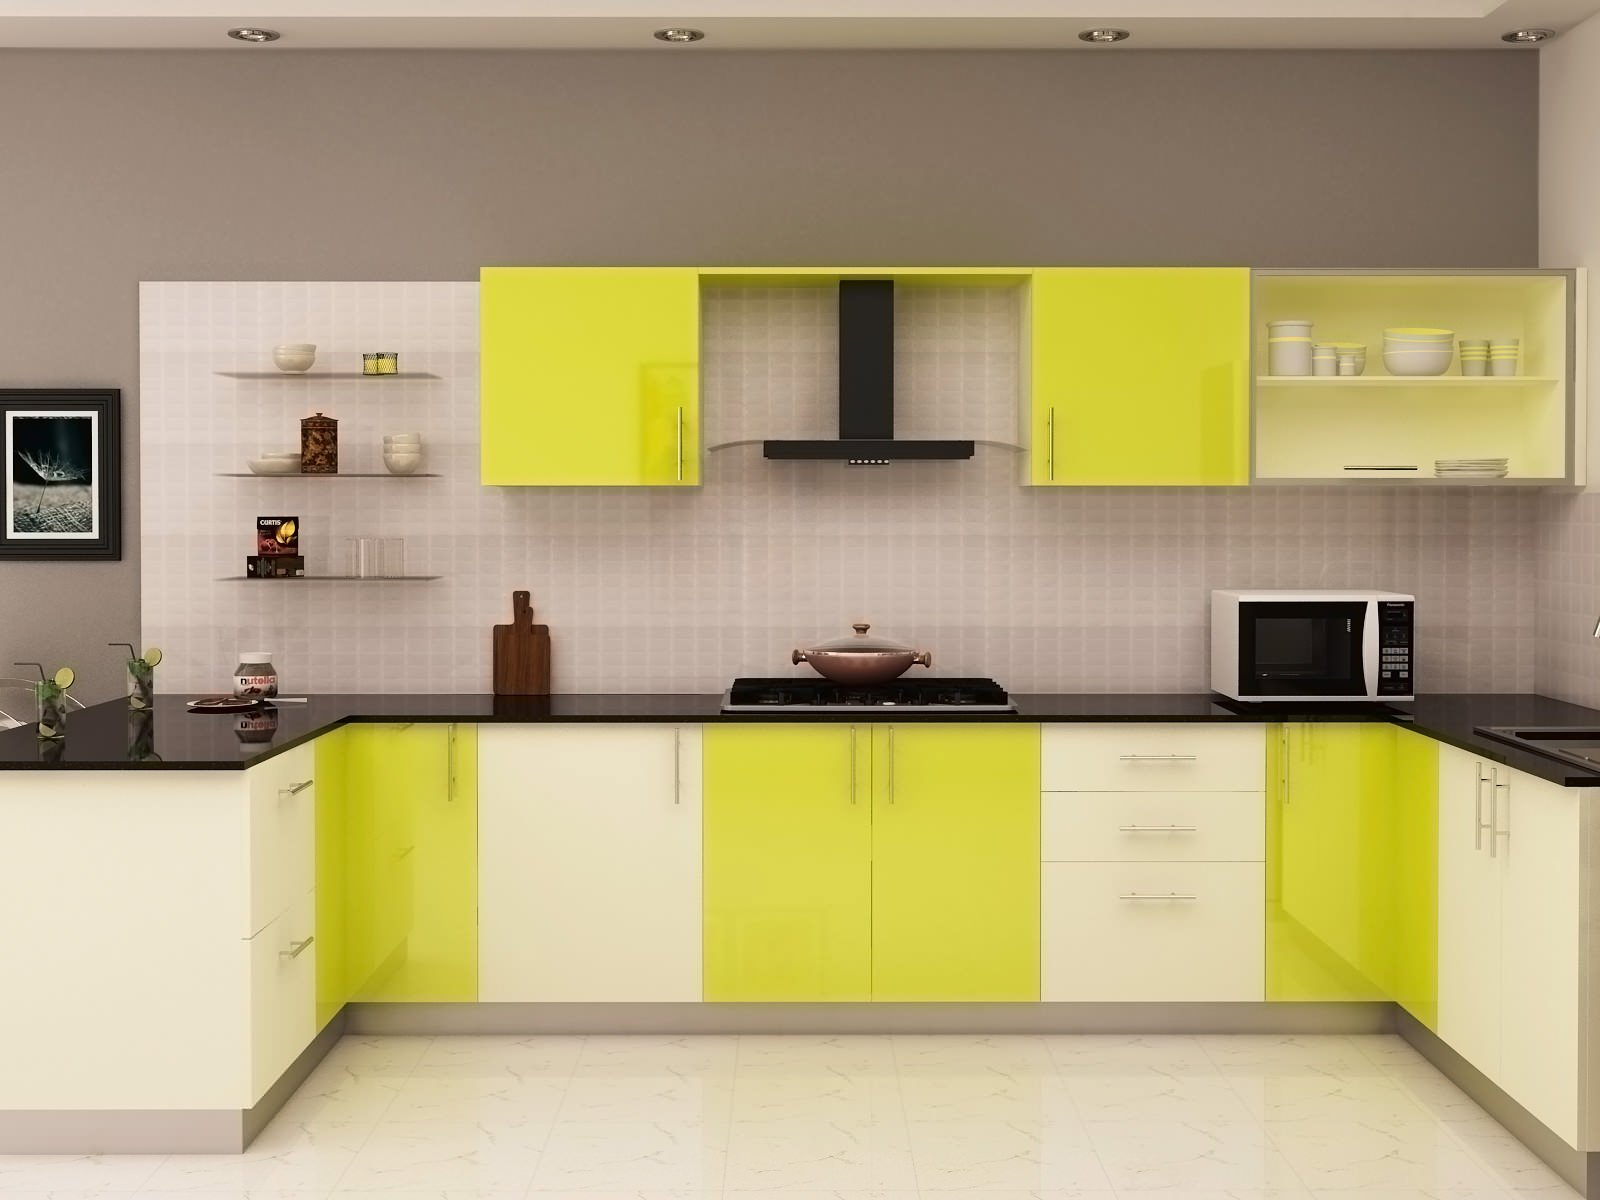 Lariokitchen modular kitchens chennai wardrobes for Italian modular kitchen